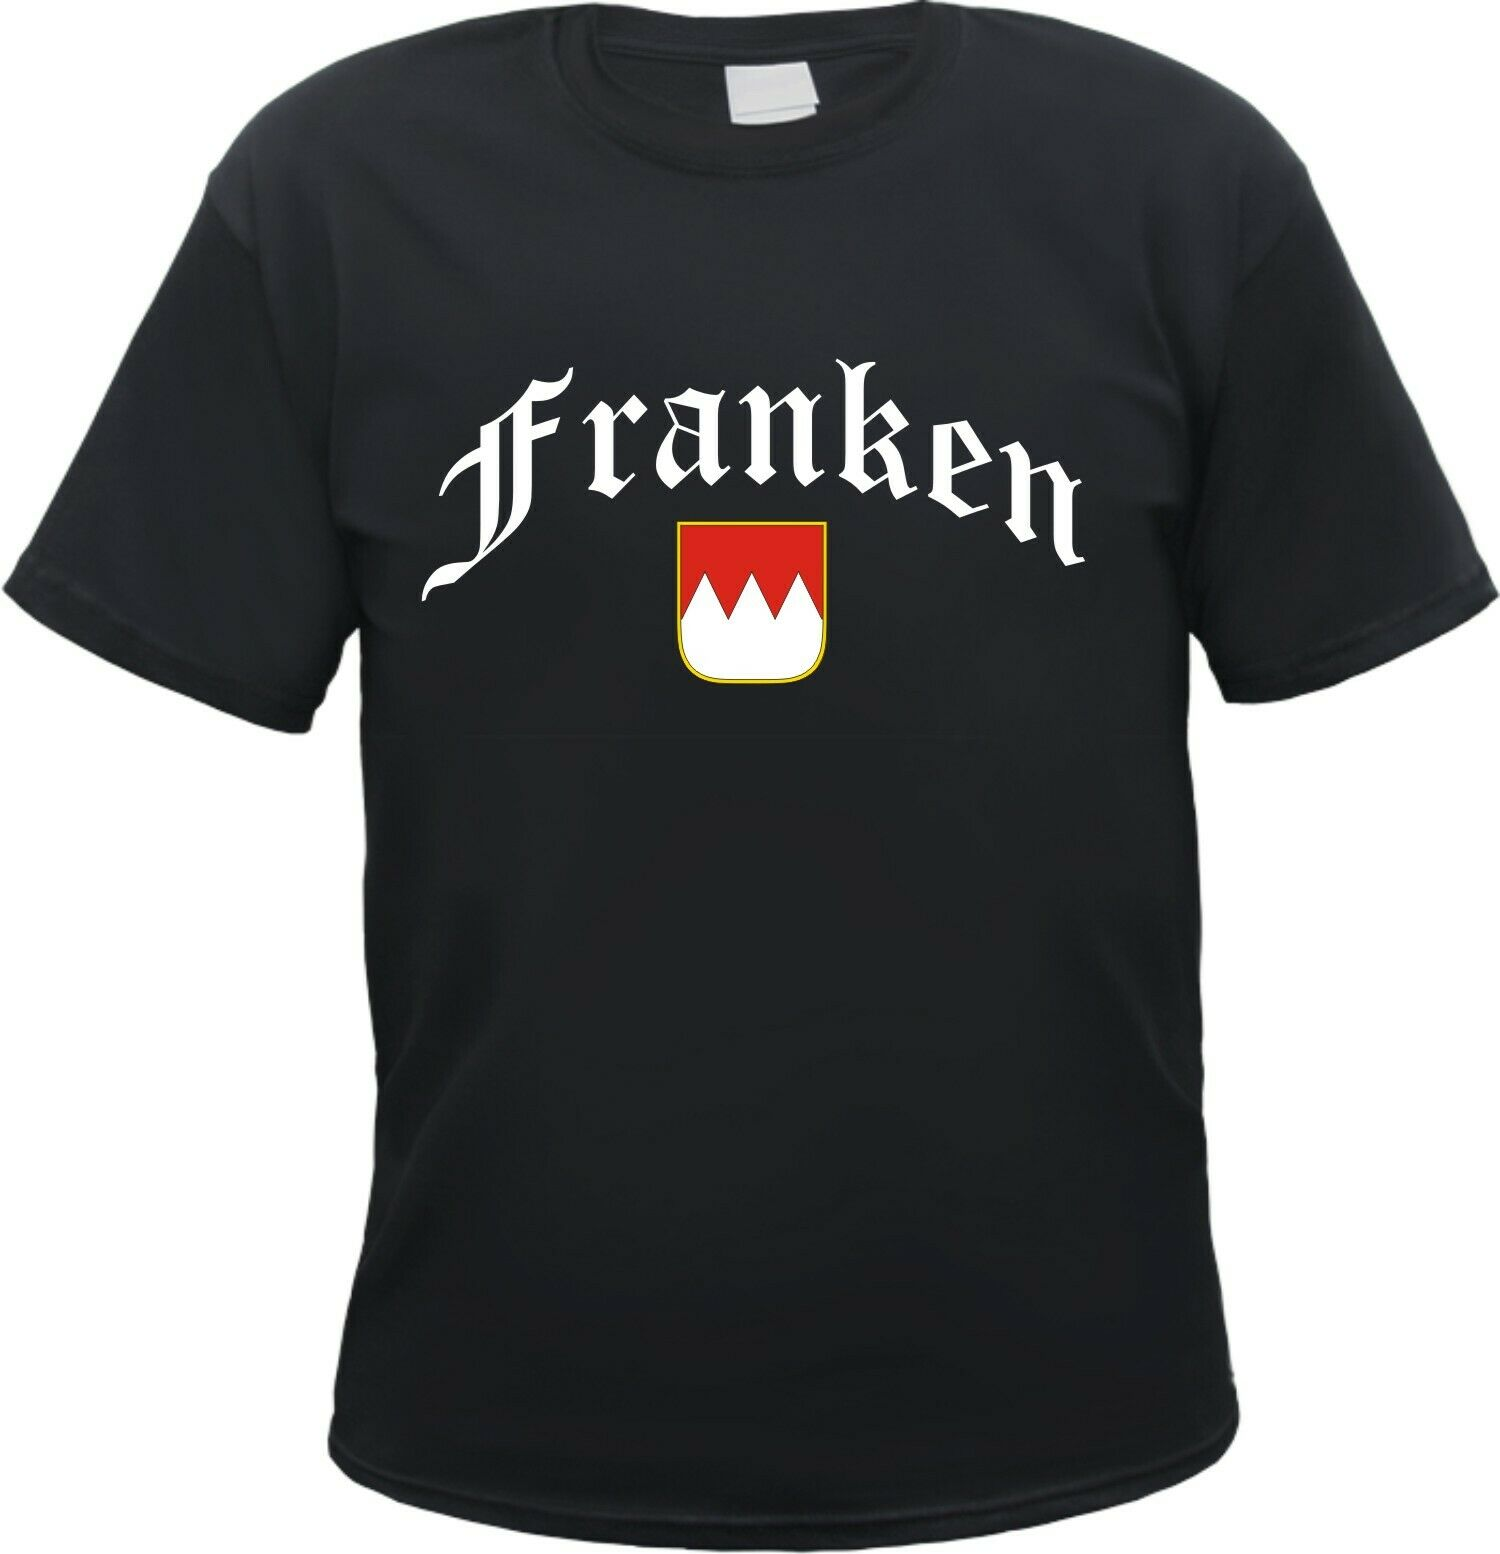 Franken T-Shirt with Crest-Franc country, Fallen, Franc Song, Nuremberg- show original title Long Sleeve Hoddies unisex hoddie s image